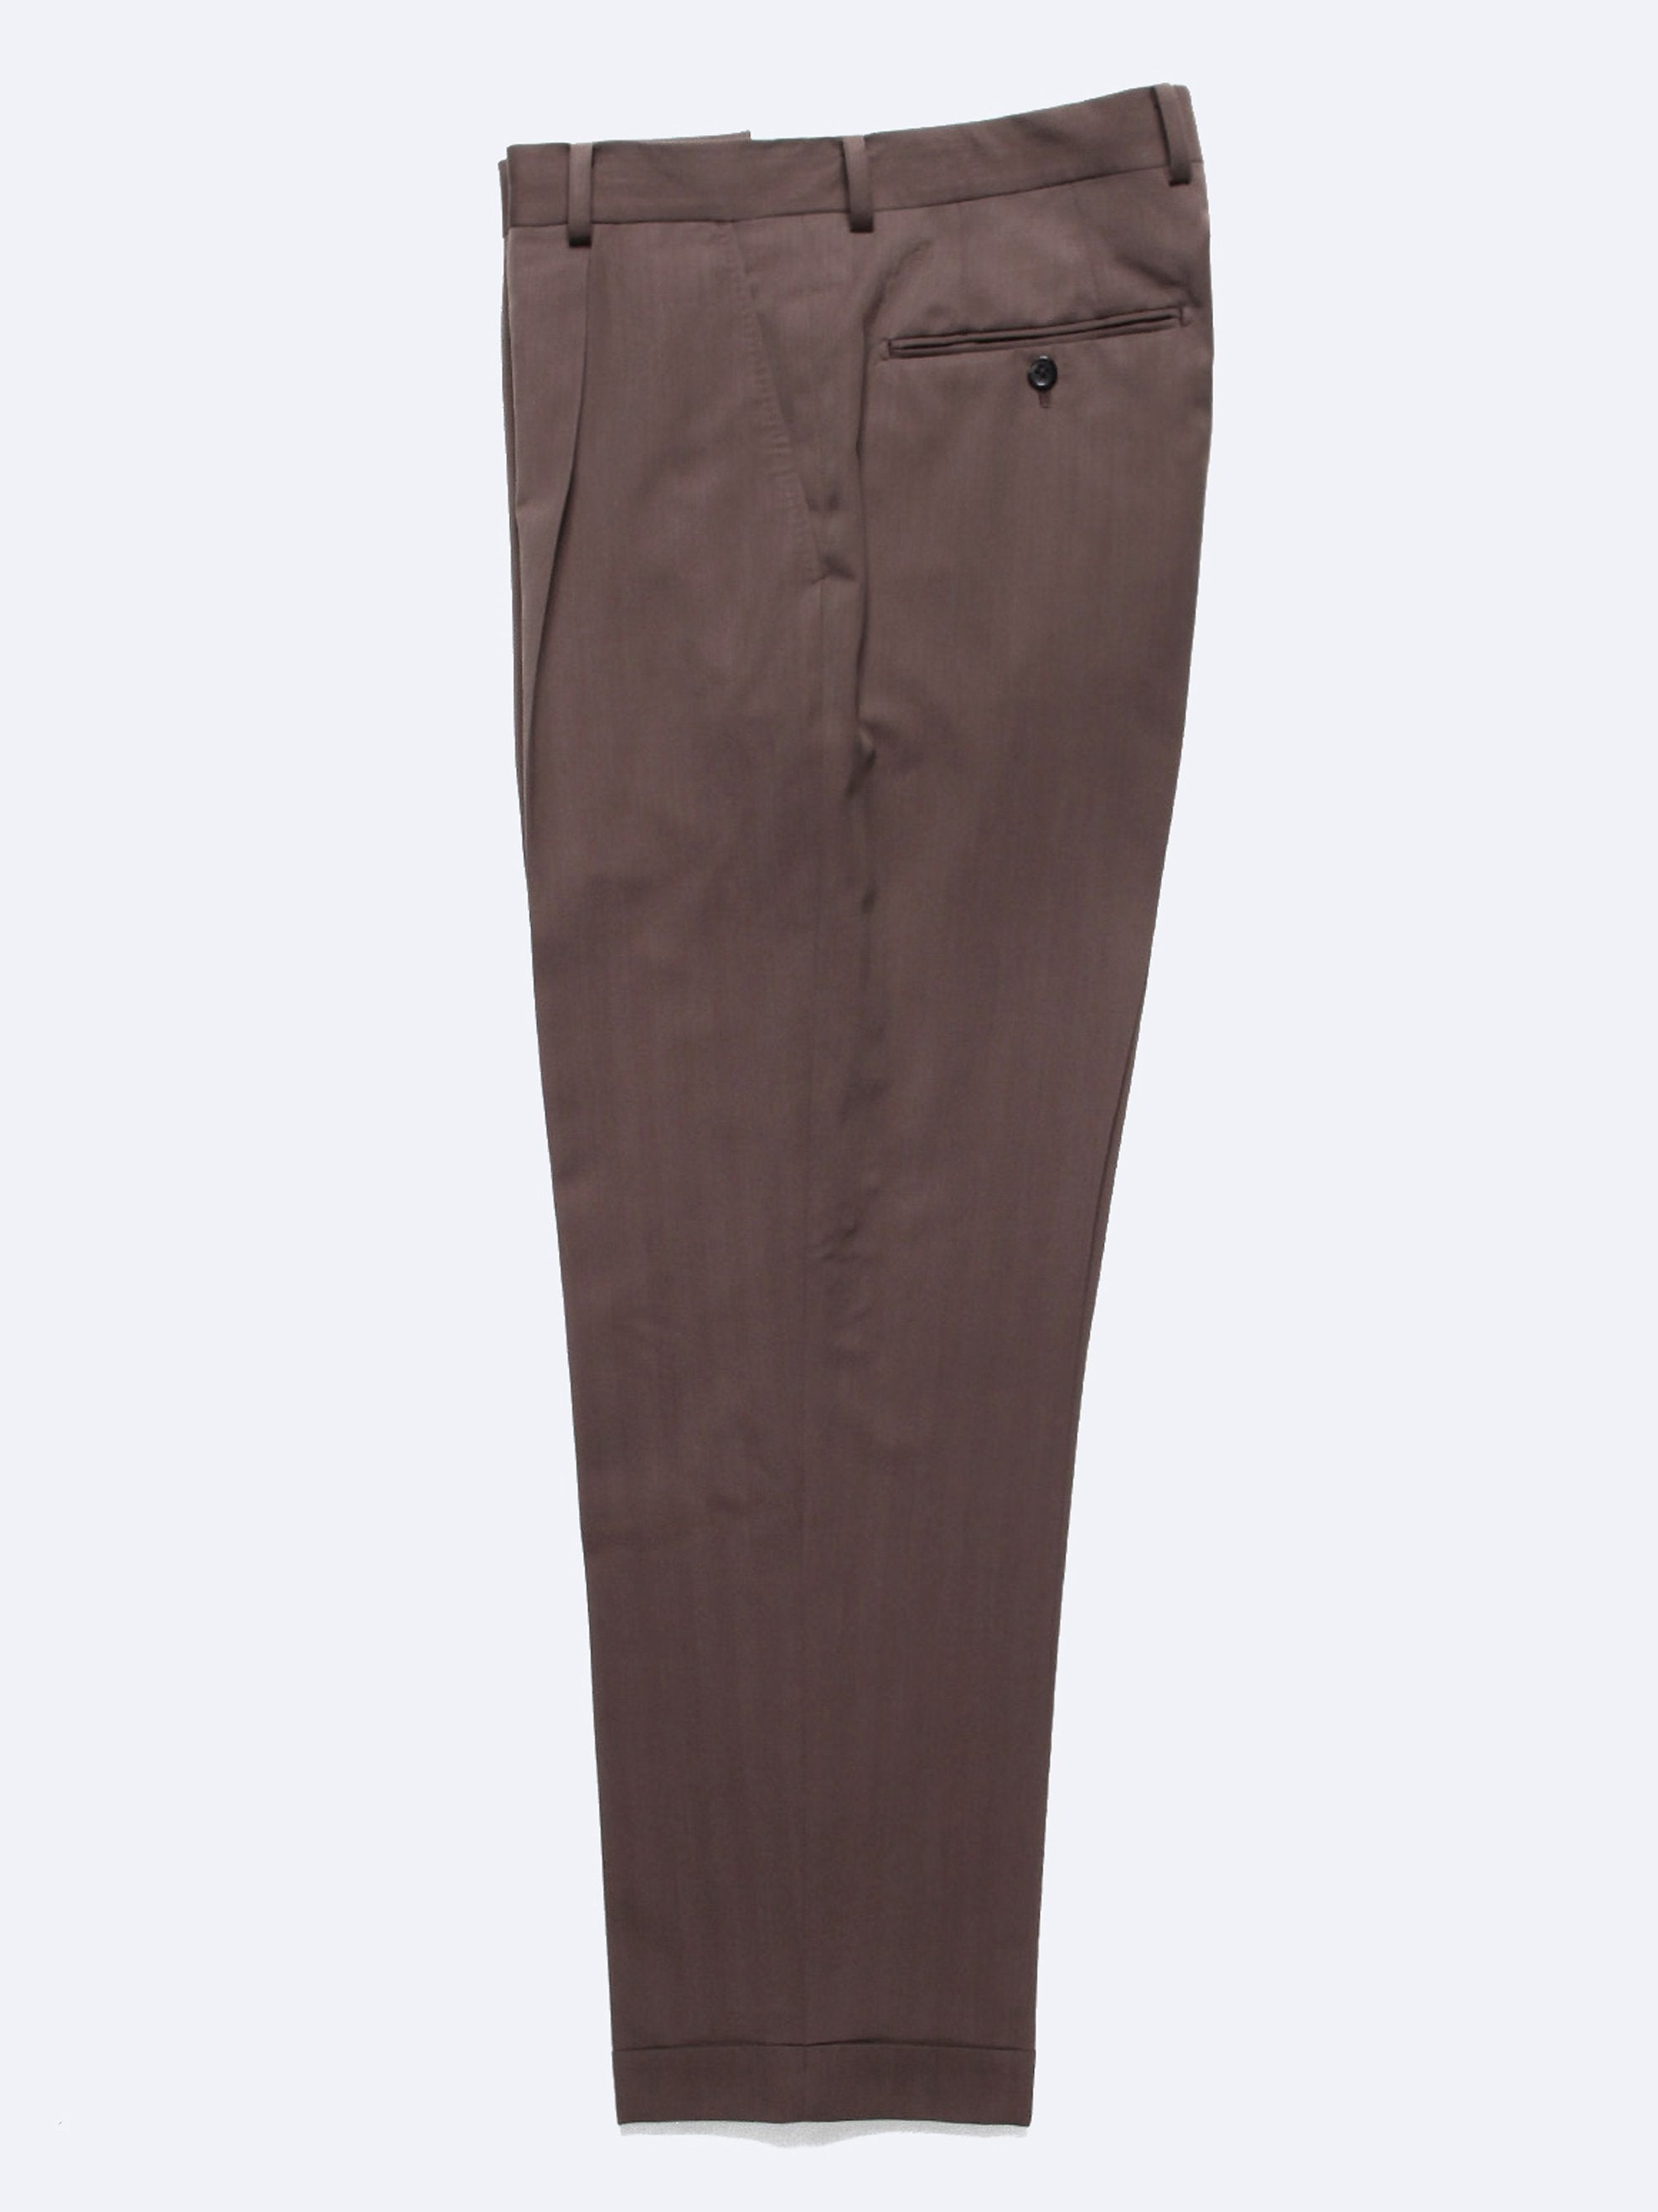 Brown Pleated Trousers (Type-2) 1